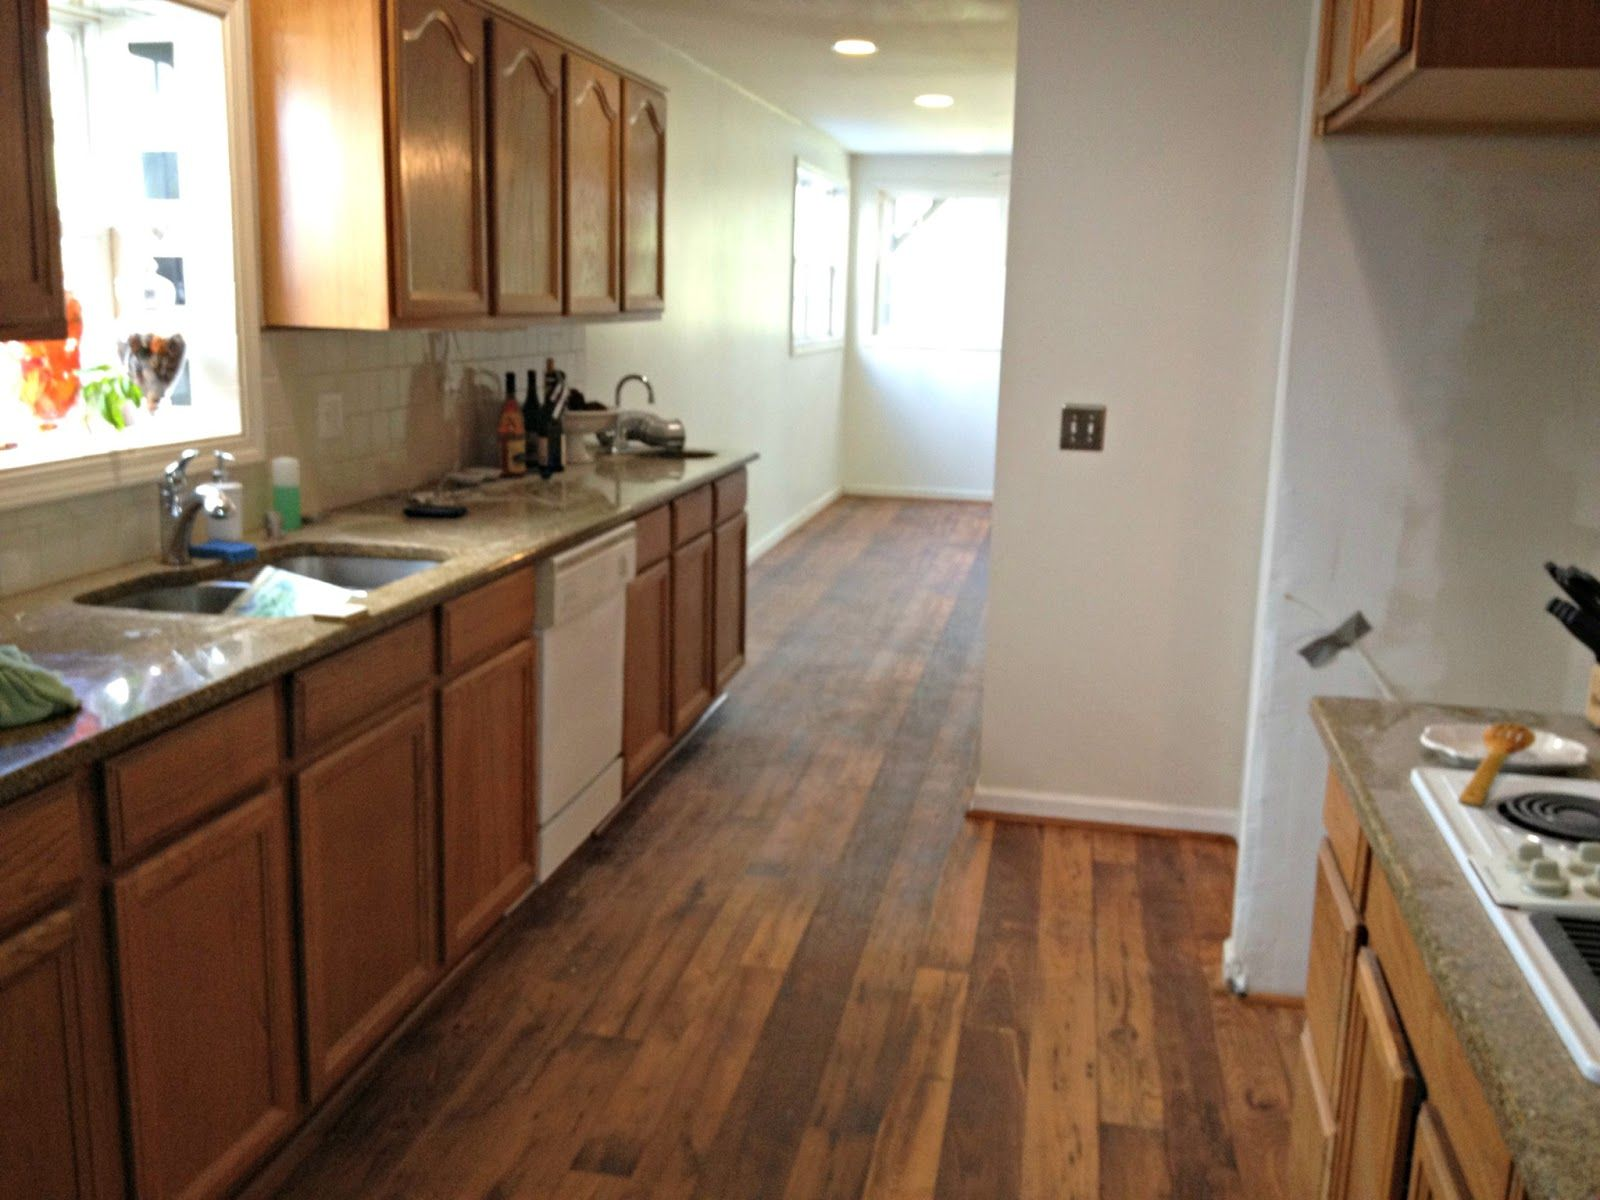 Wooden Floor For Kitchen Kitchen Floor Laminate Charming Installing Laminate Flooring With